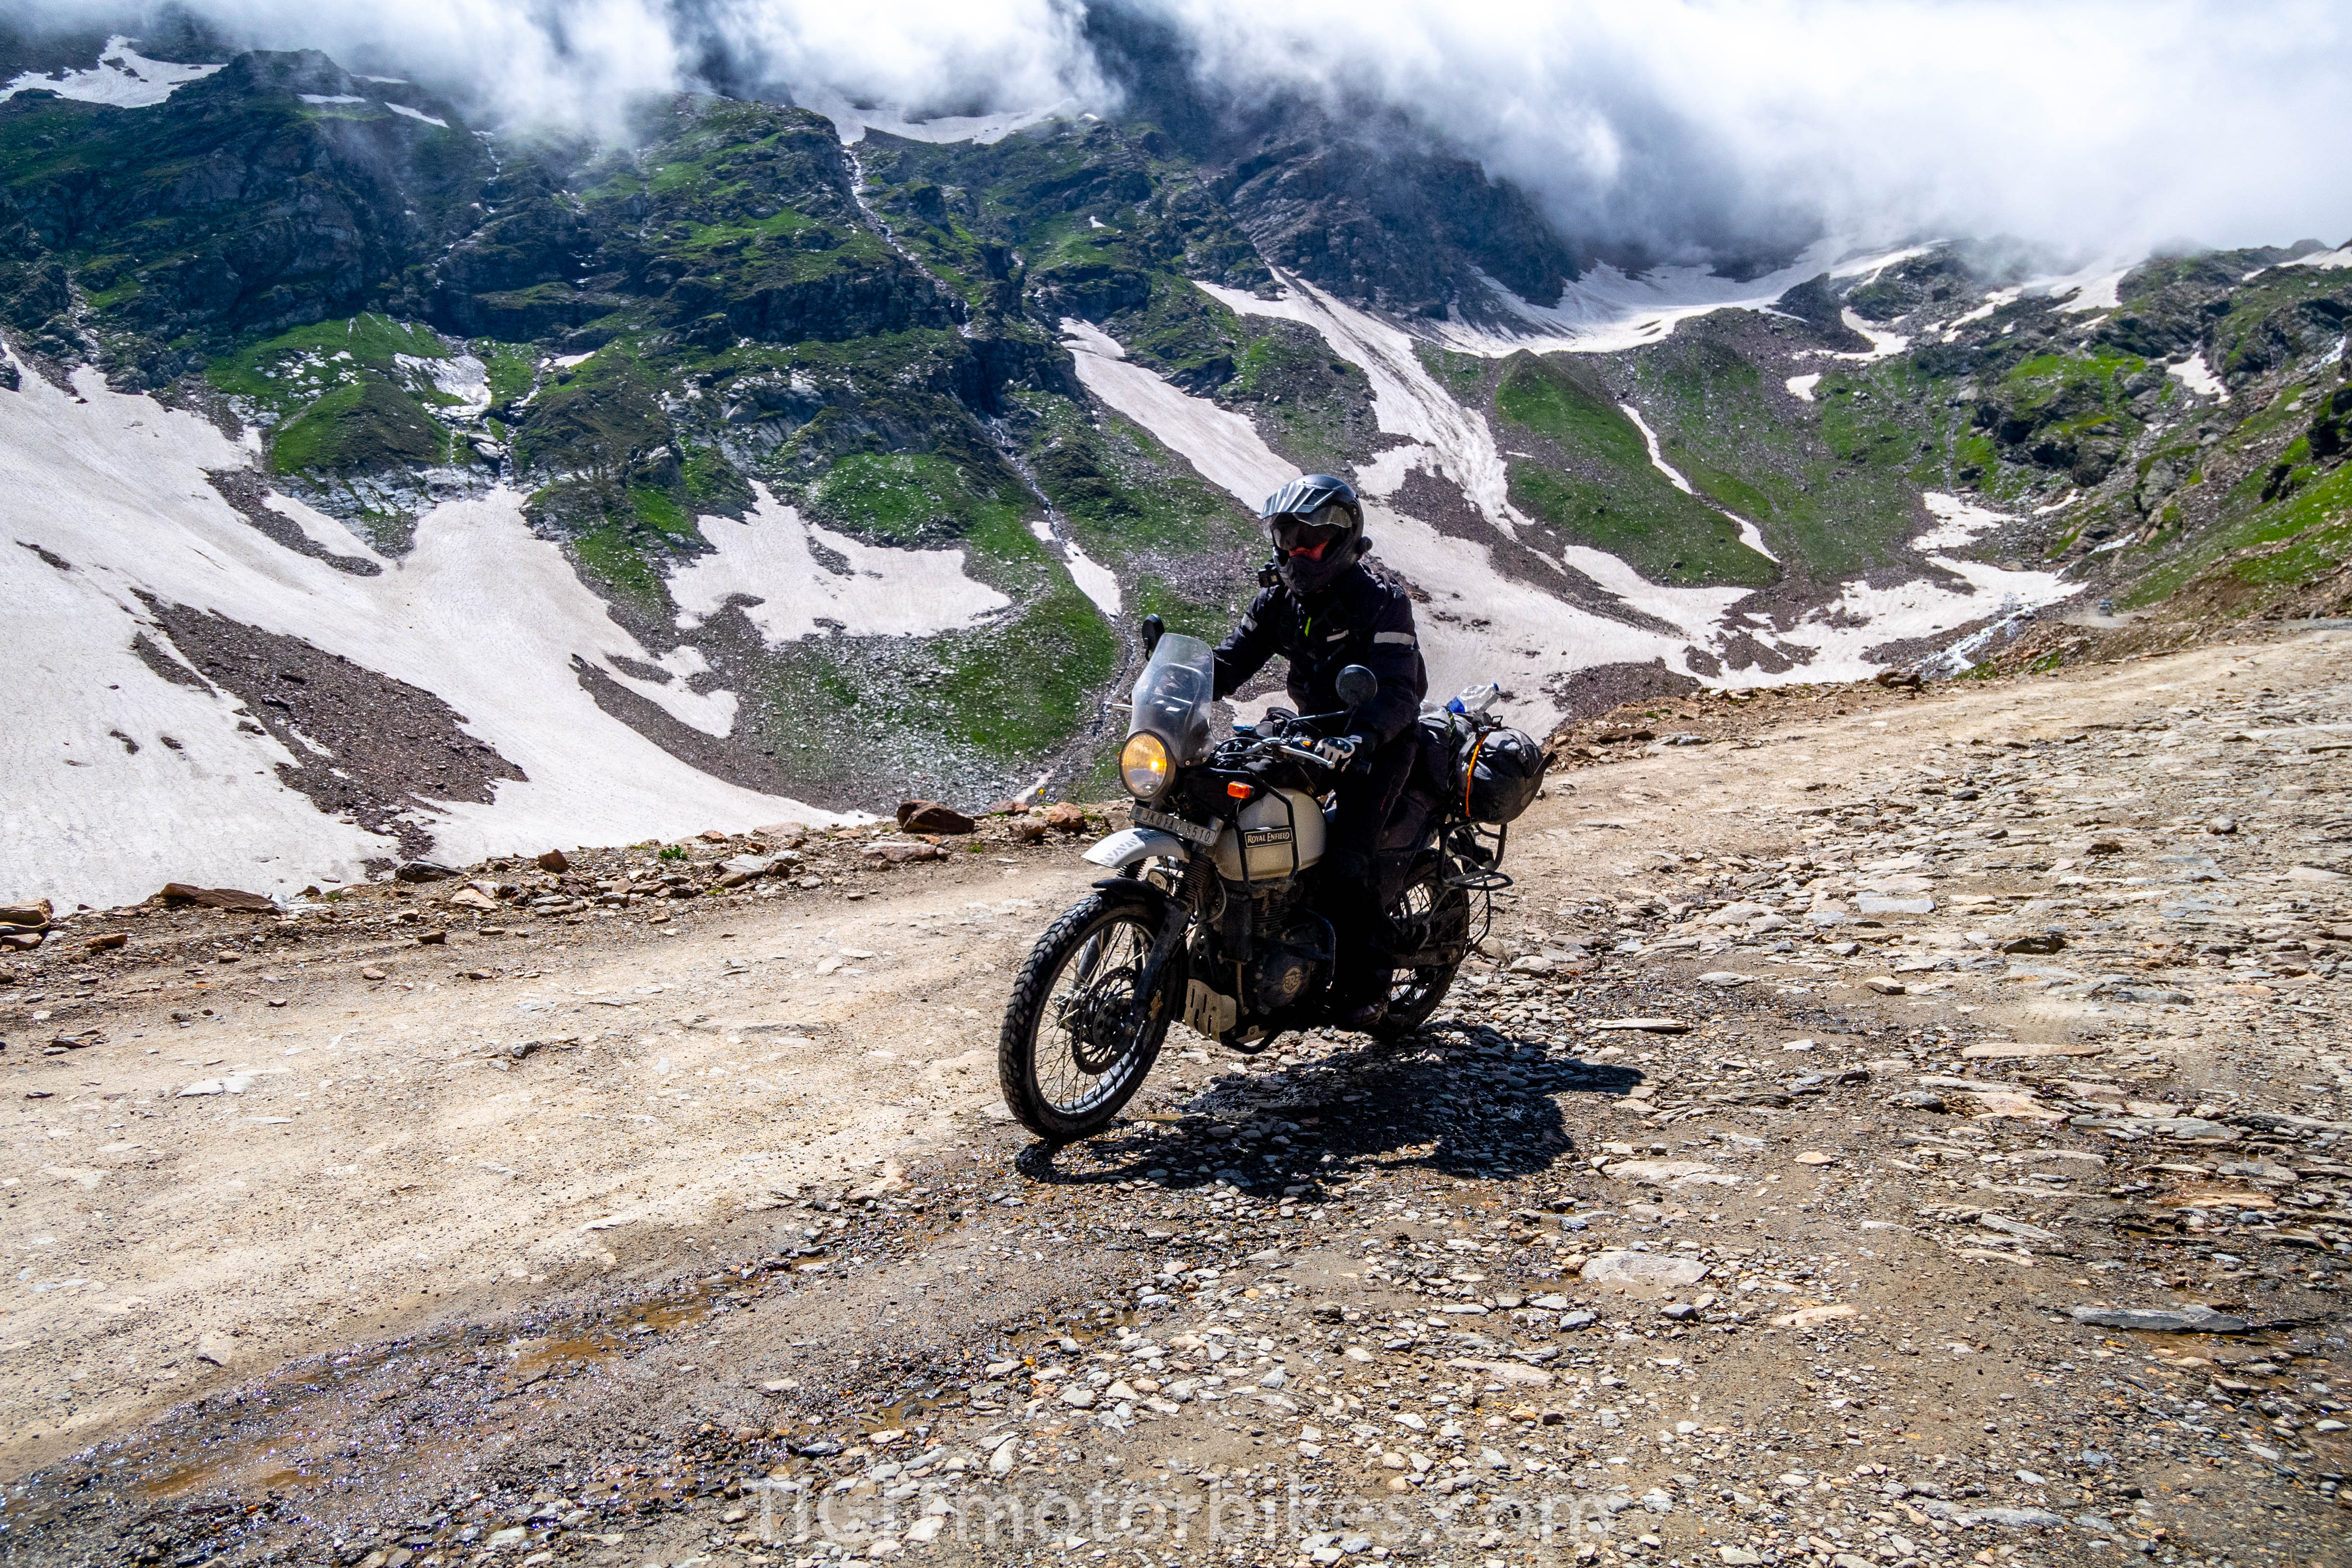 Challenging roads in the Himalayas